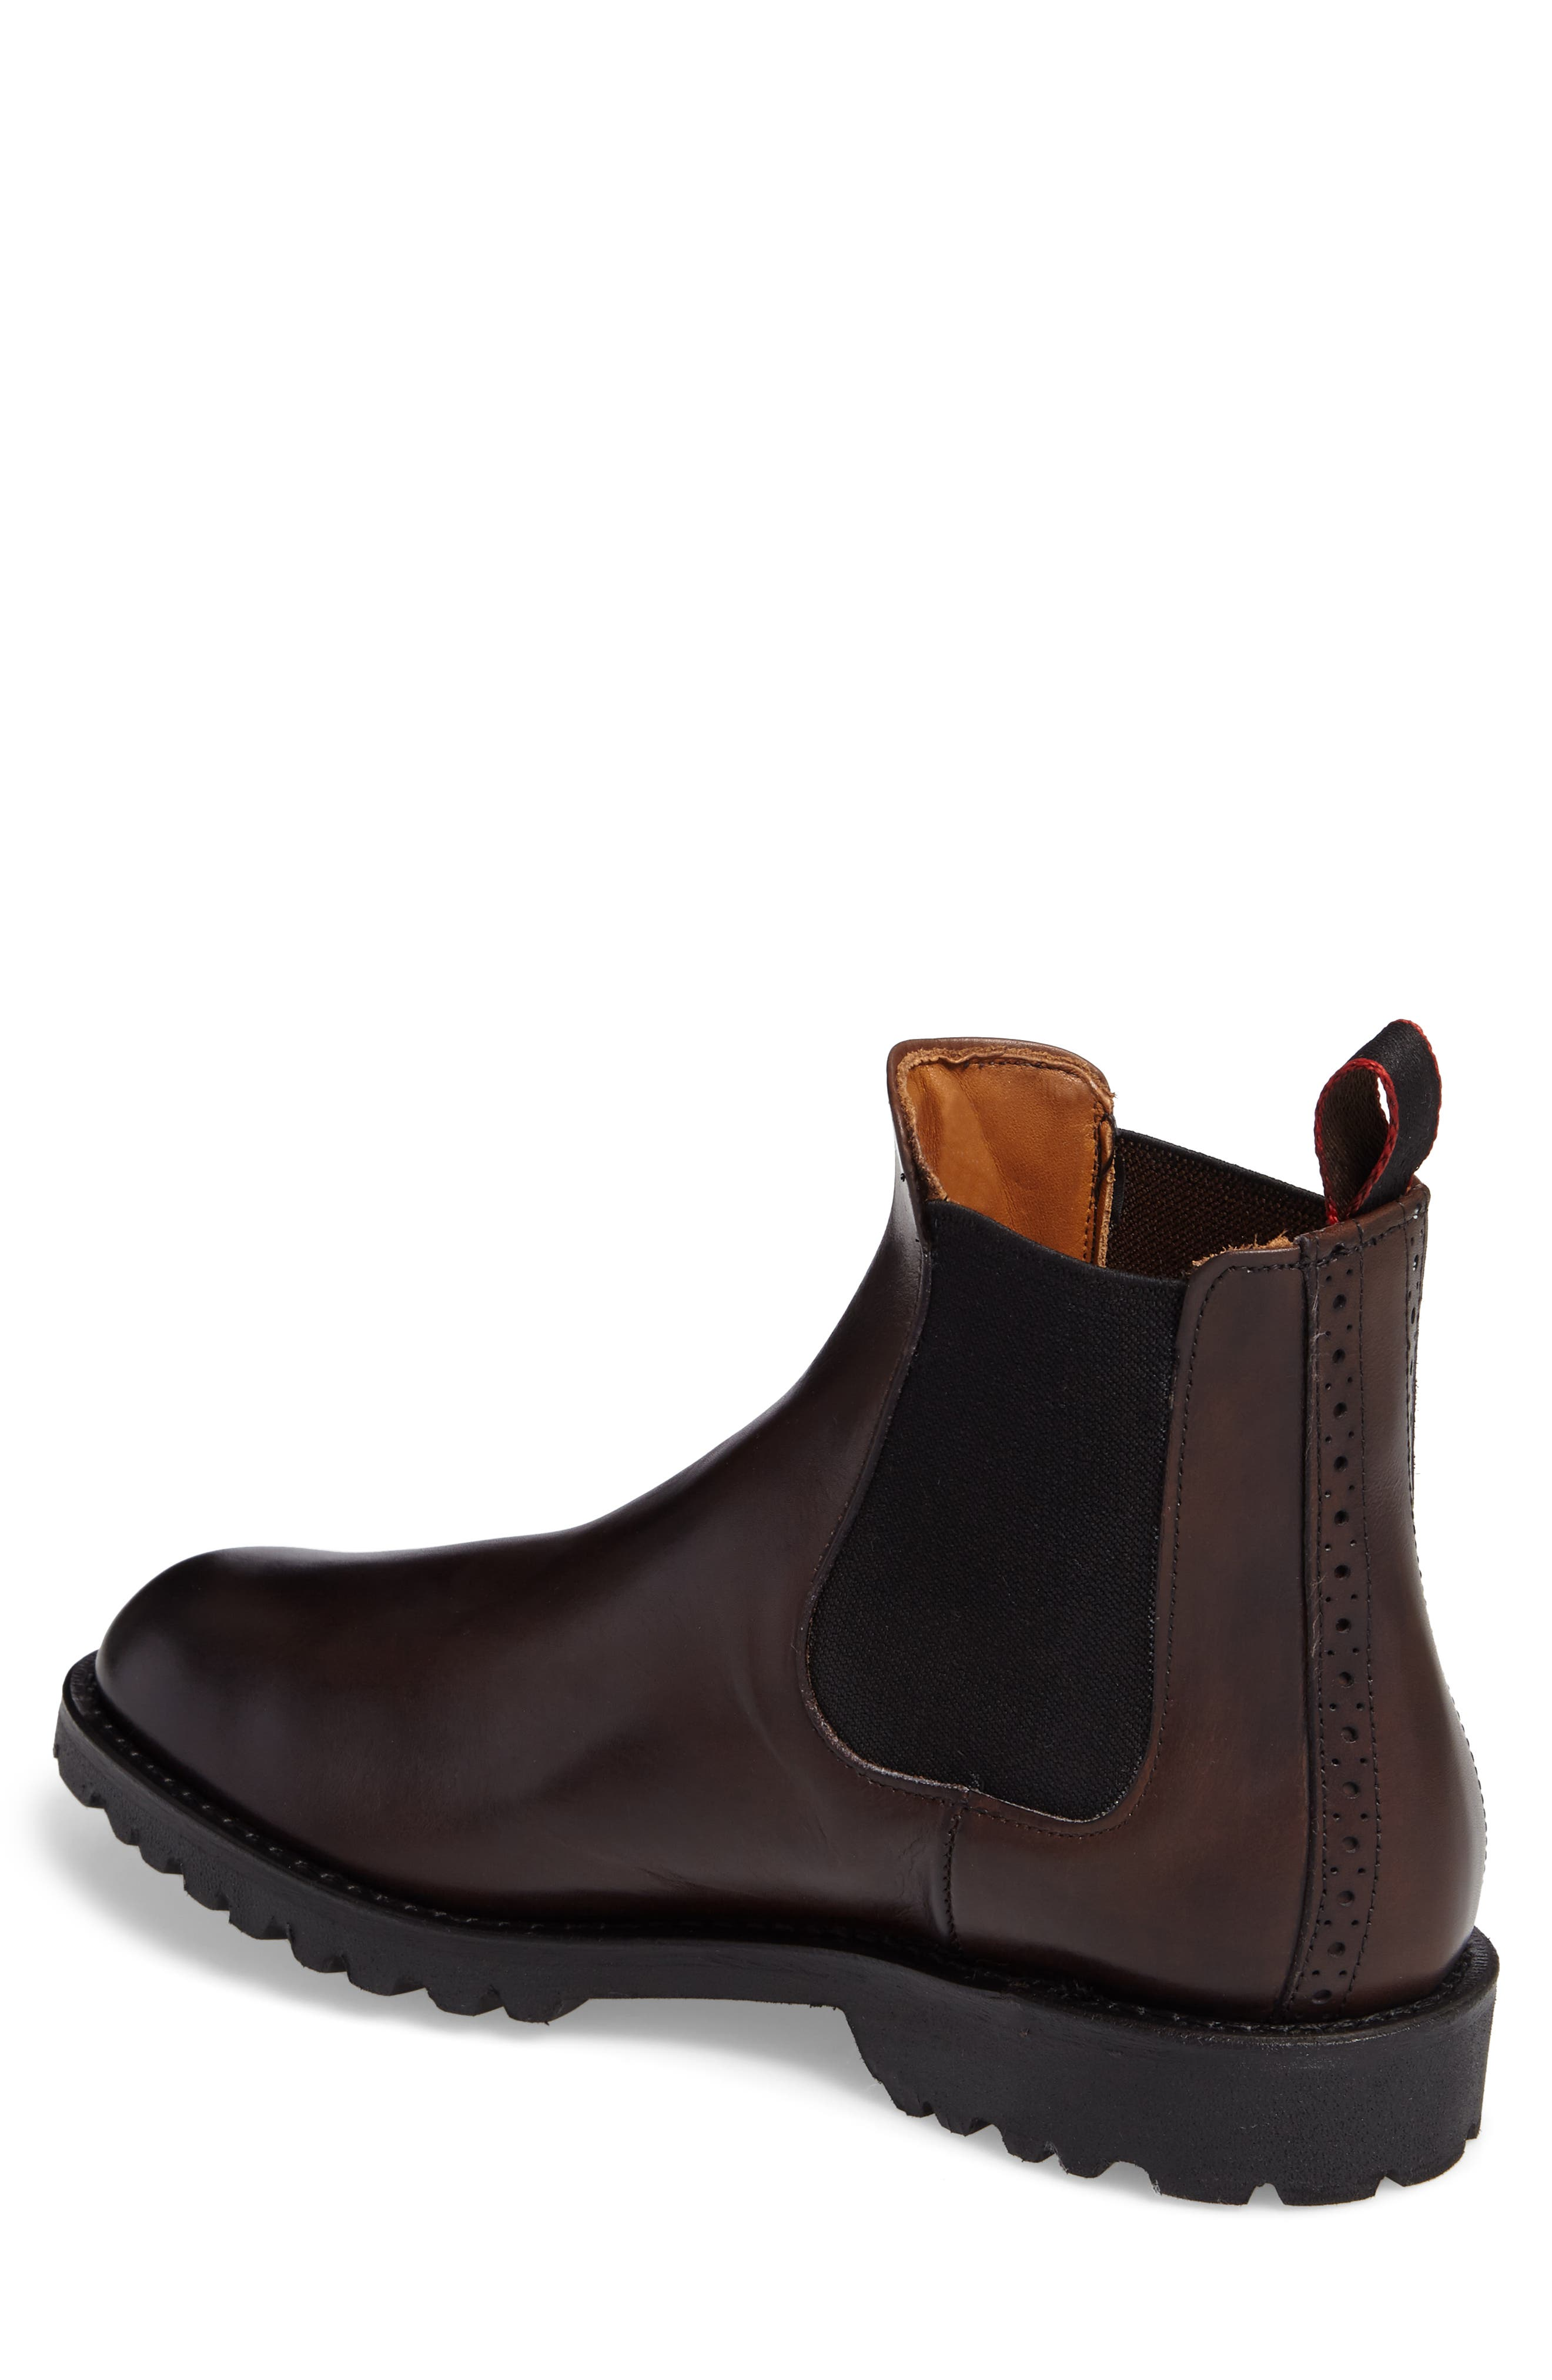 Tate Chelsea Boot,                             Alternate thumbnail 4, color,